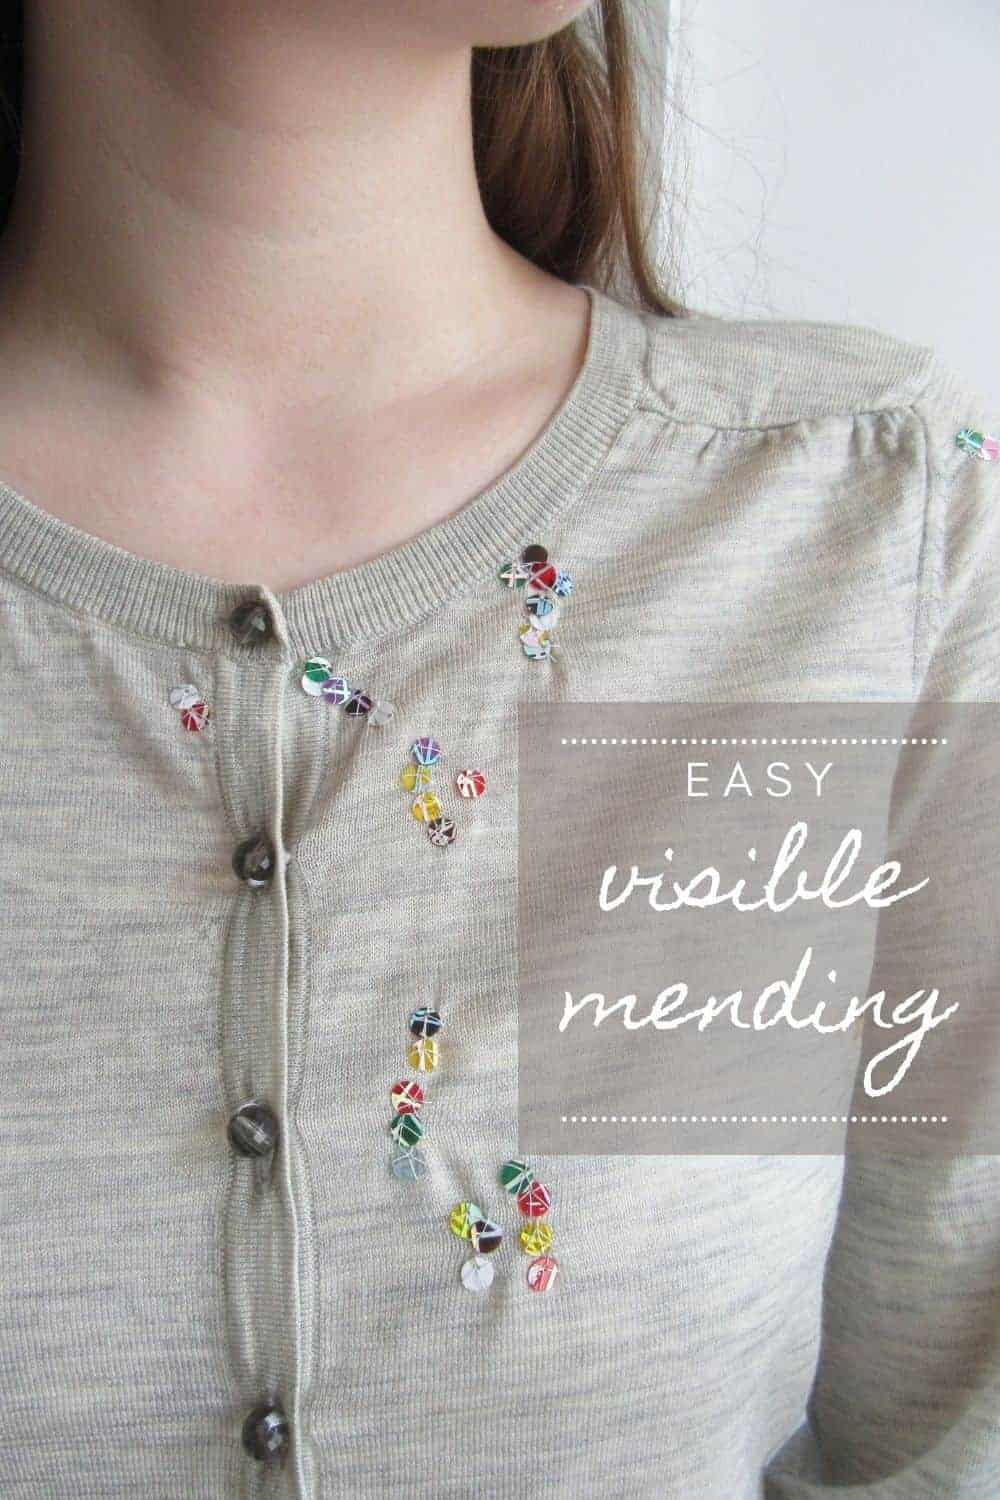 easy visible mending step by step tutorial diy ideas by maker Lisa Bennett using sequins to breath beautiful new life into moth eaten old knitwear and worn clothing and fabric #repair #makedoandmend #visiblemending #sequins